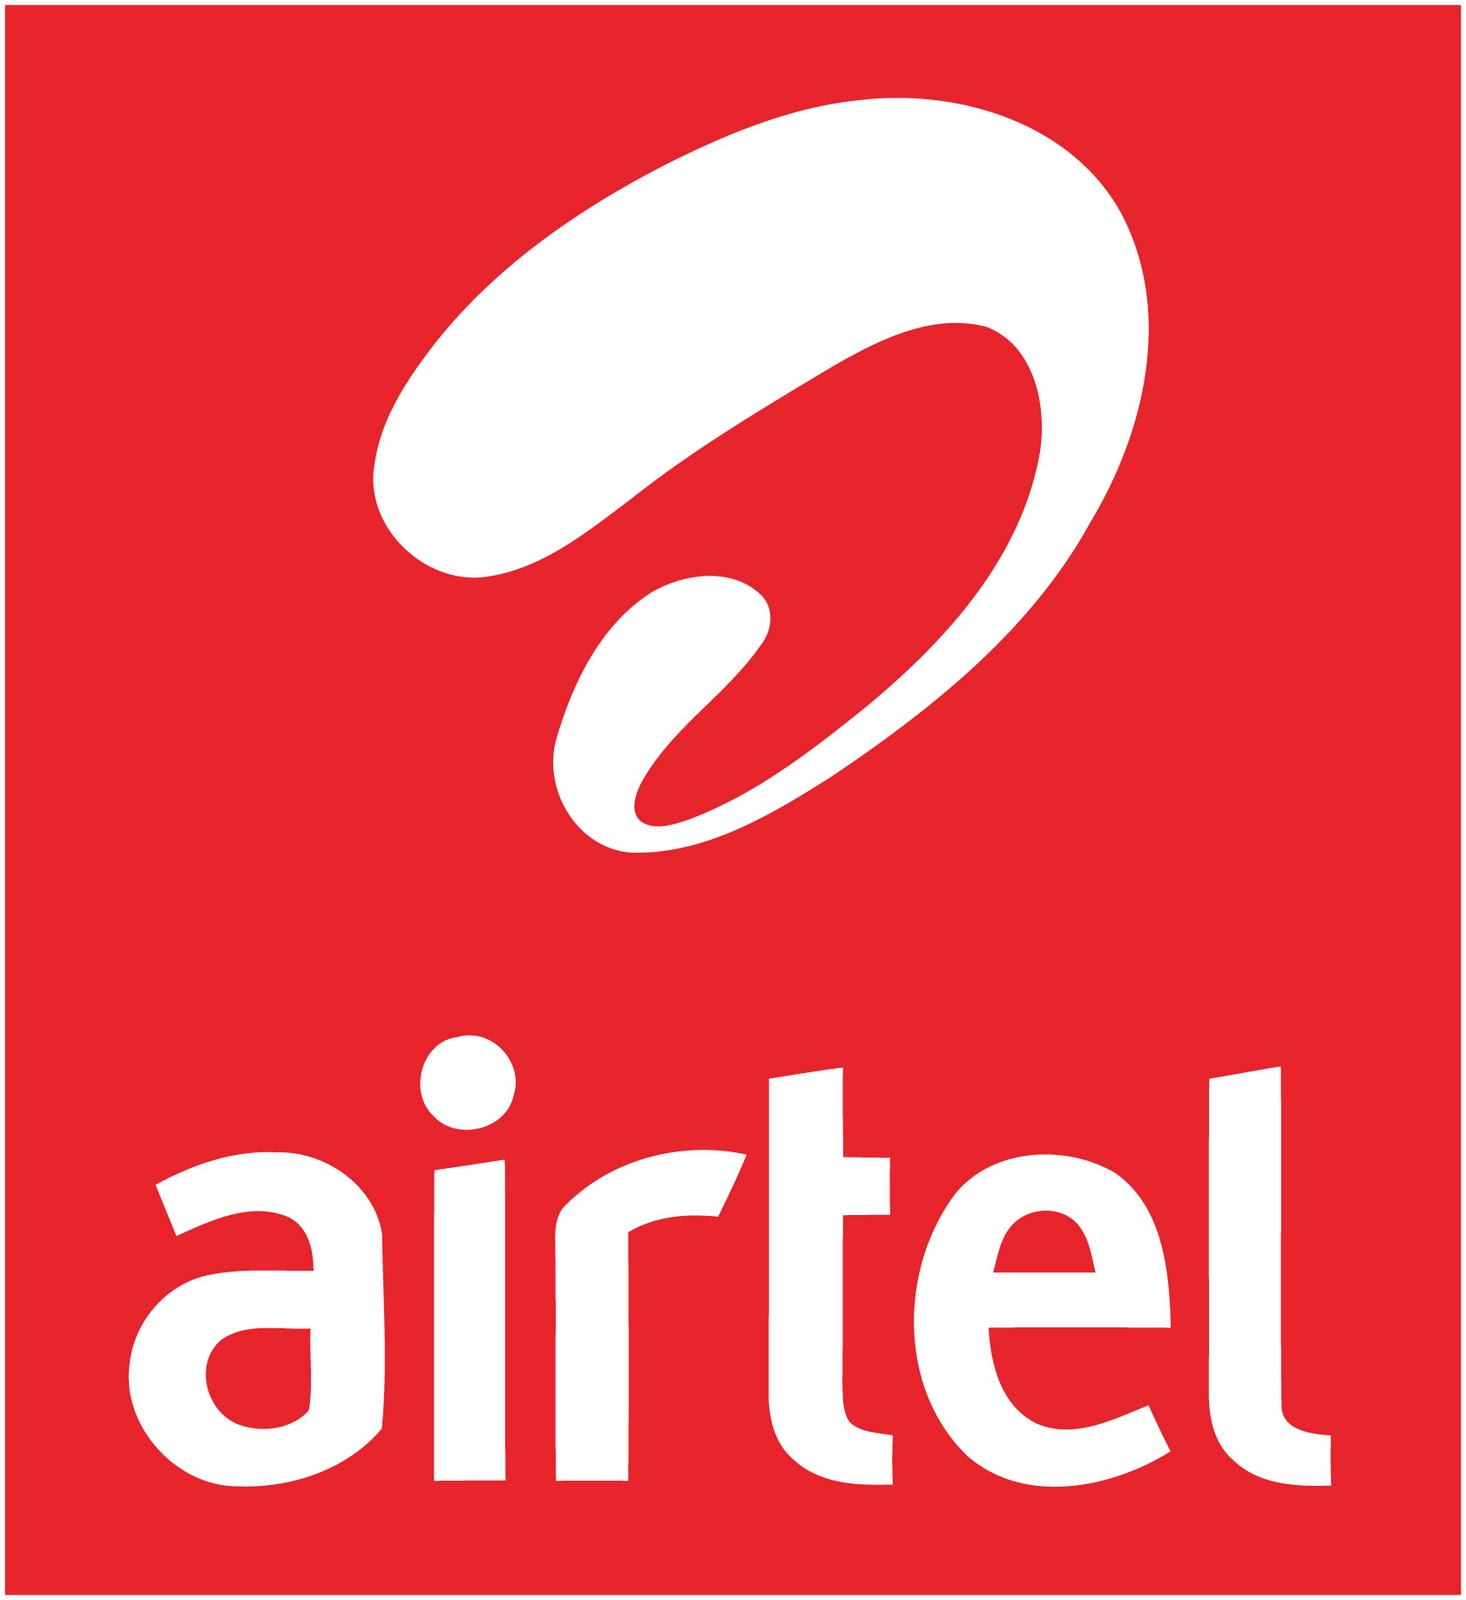 Vector Logos,High Resolution Logos&Logo Designs: Airtel